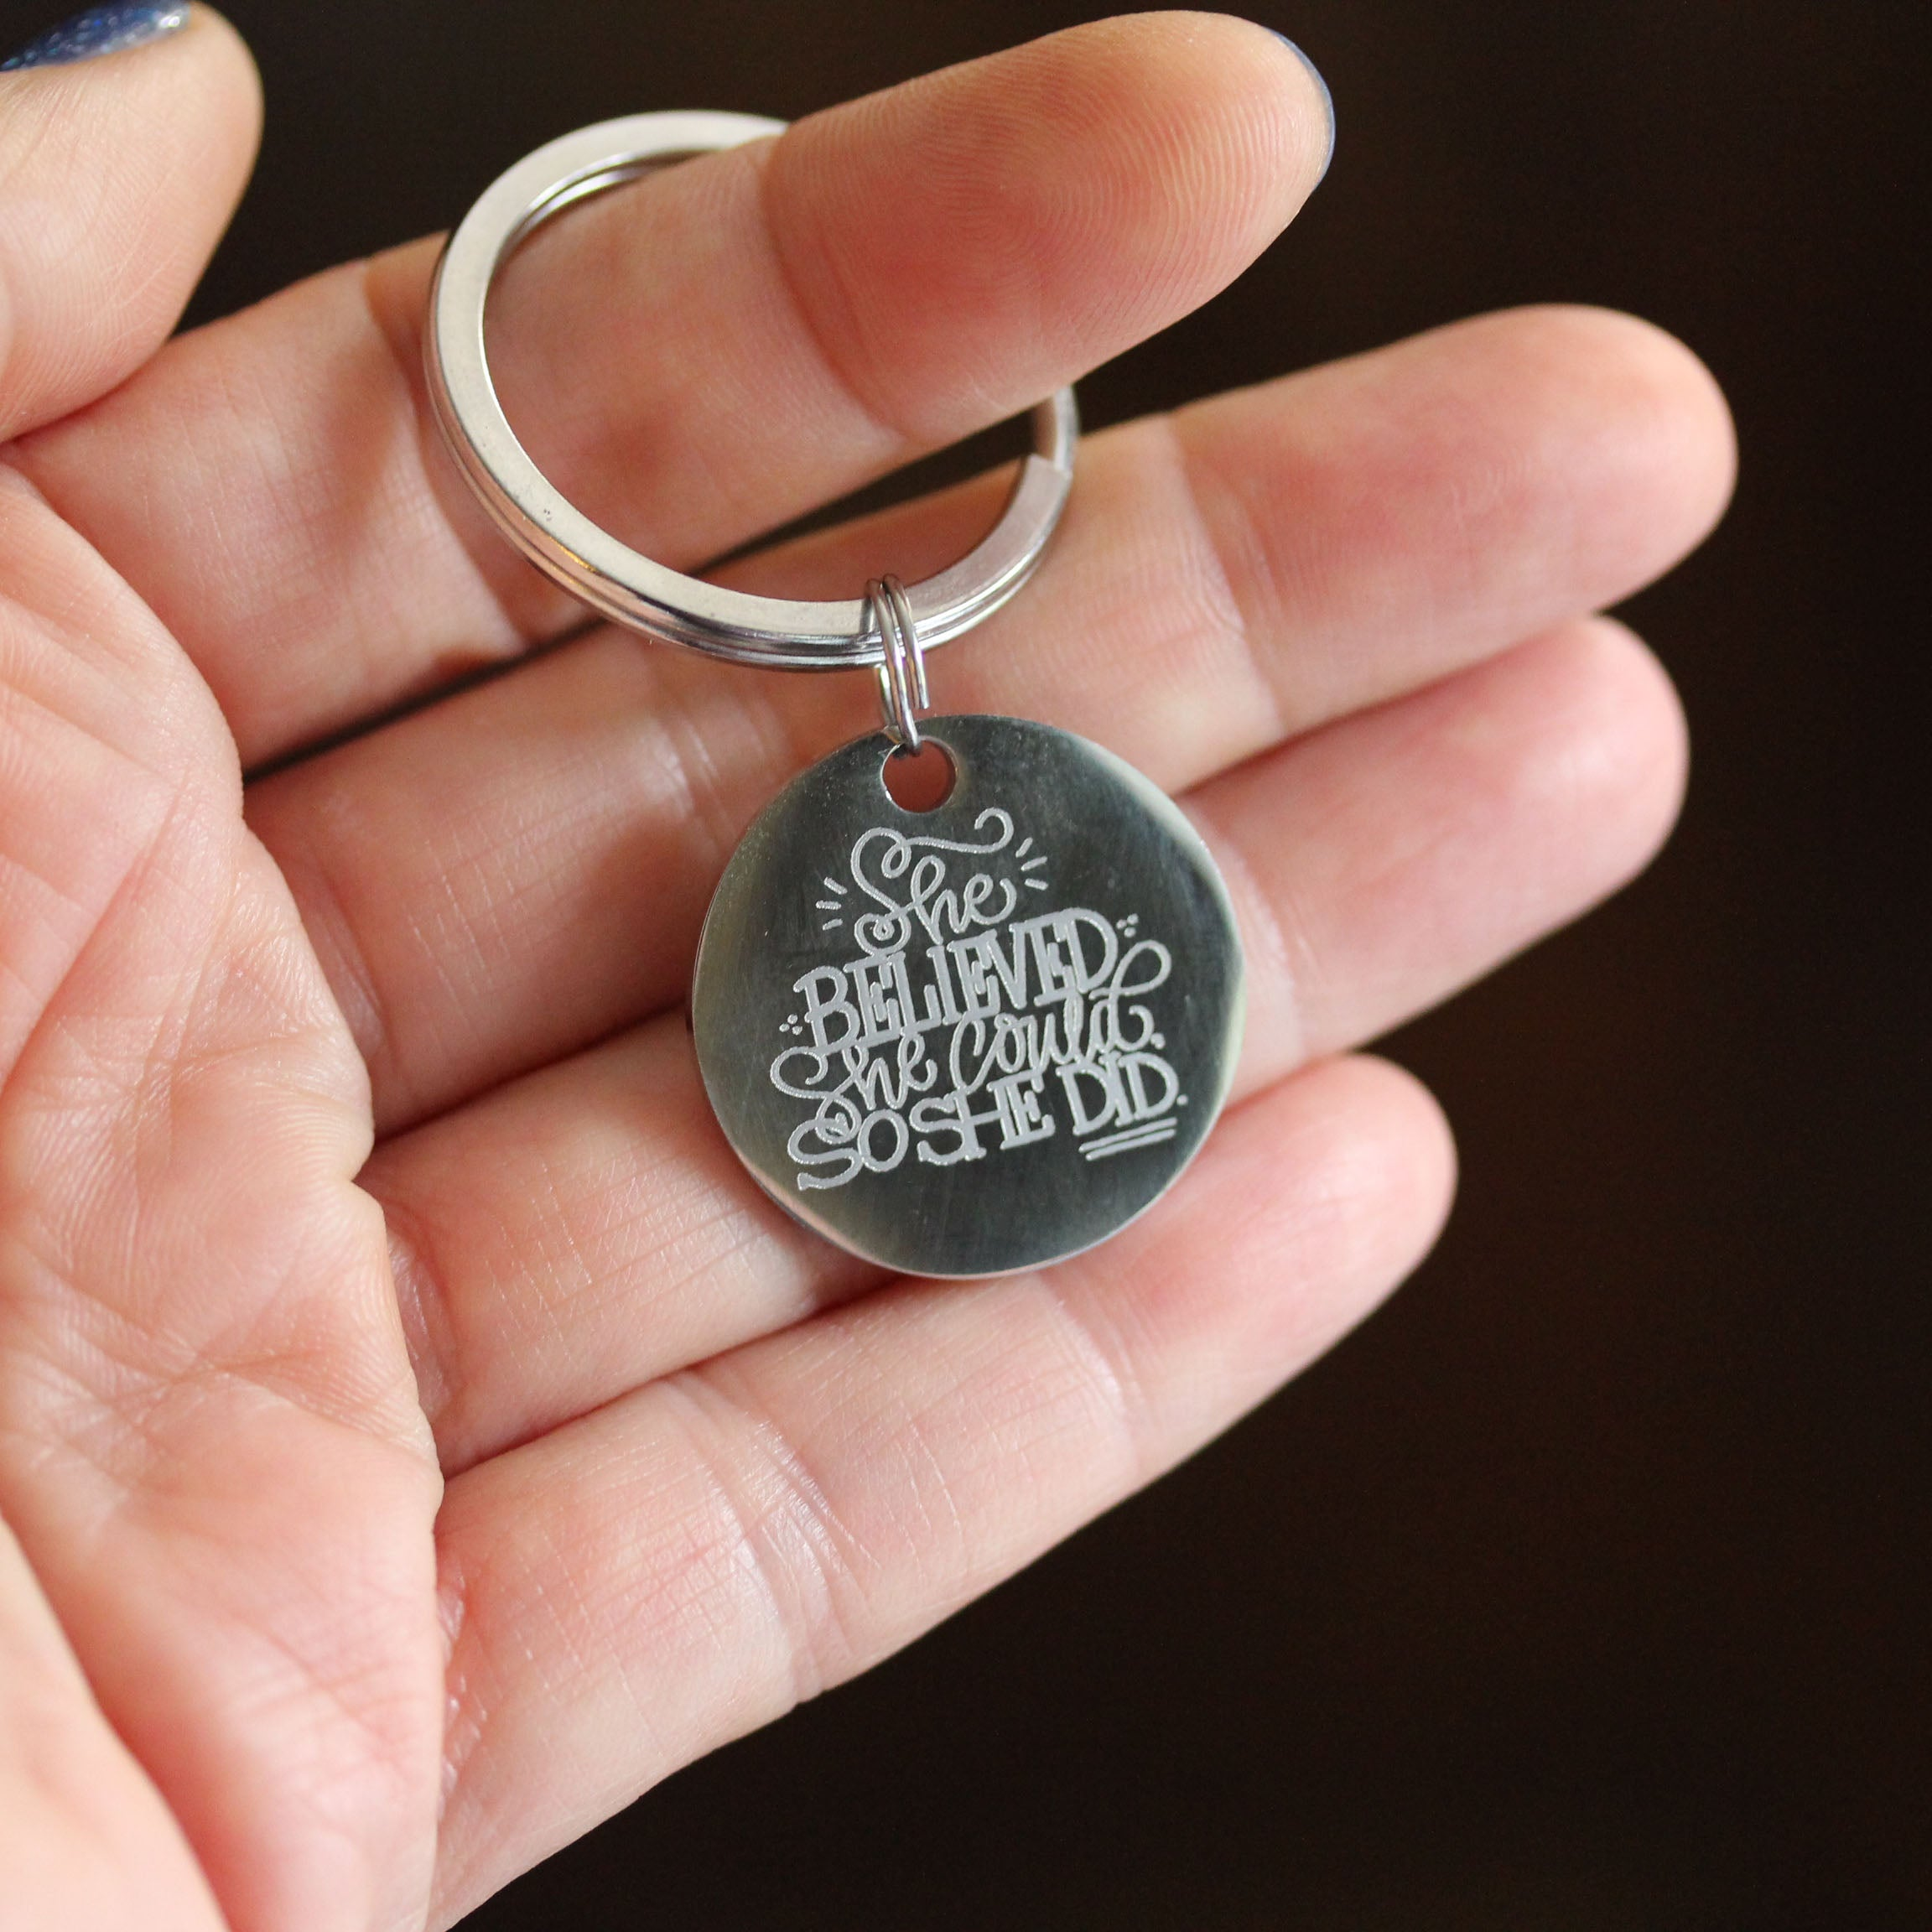 Breast Cancer Awareness Keychain - She Believed She Could So She Did